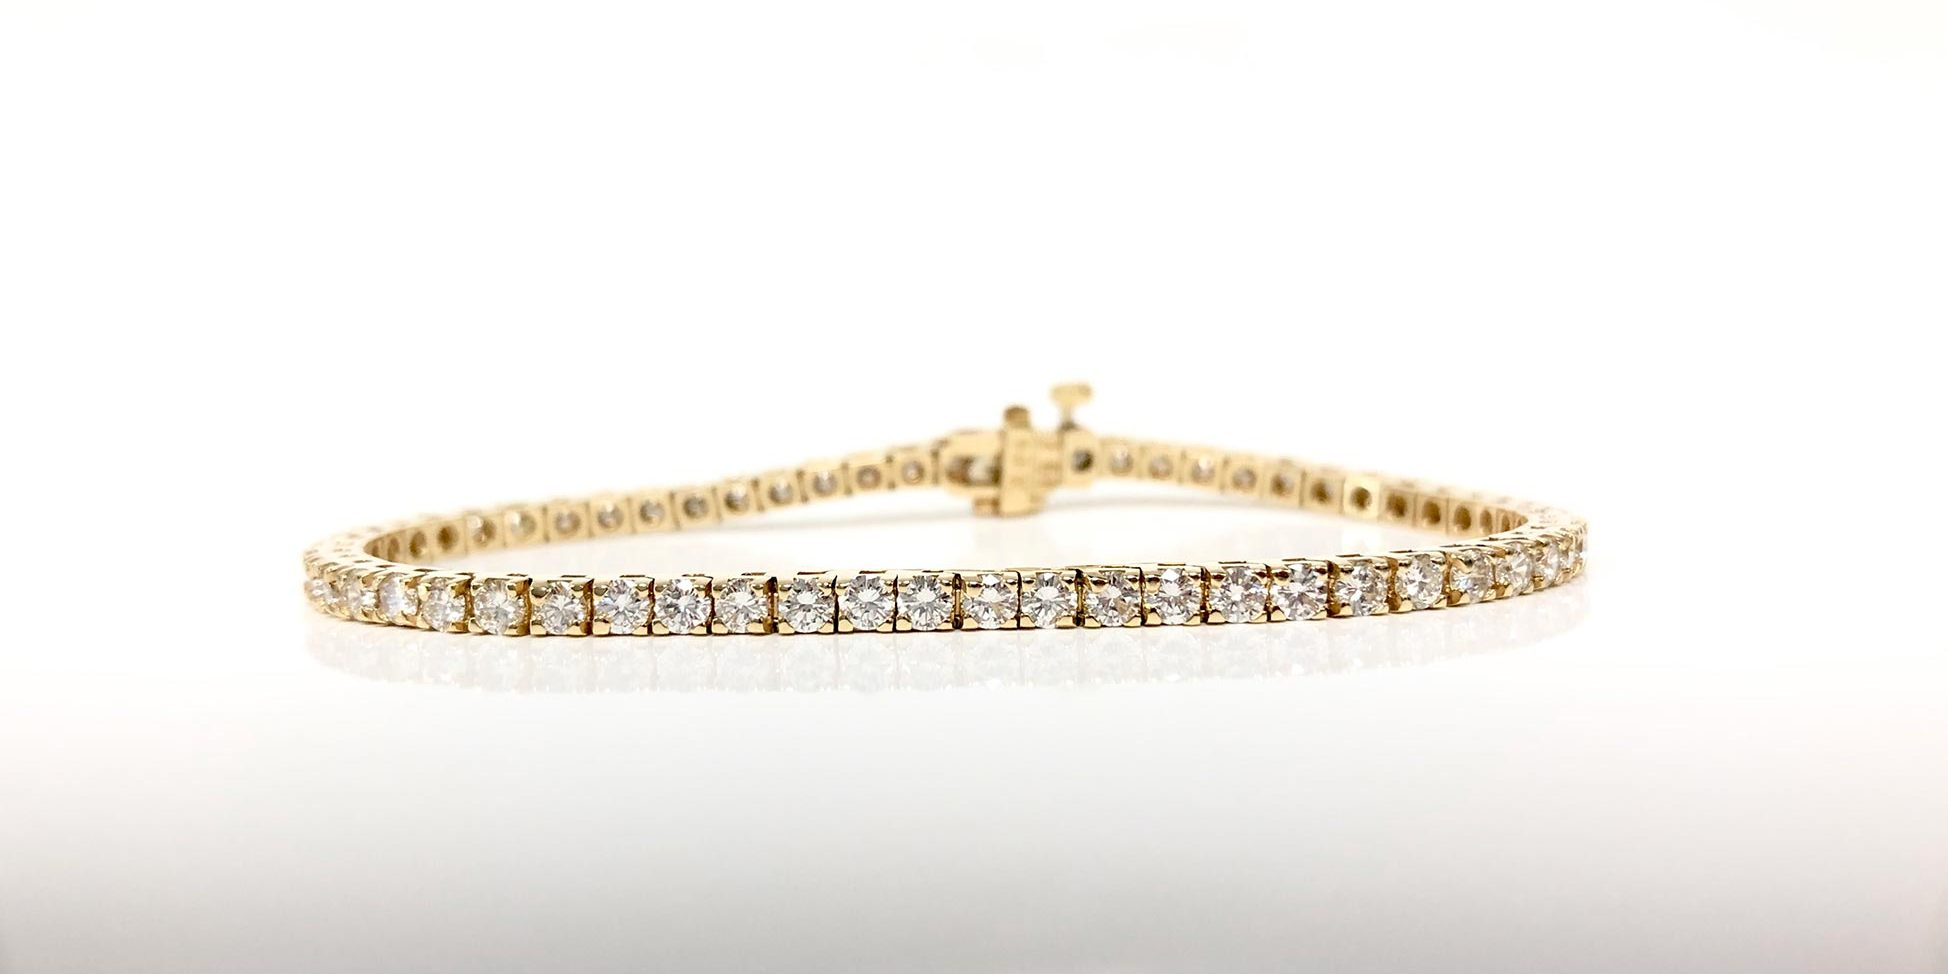 14KY 4.0 Carat Total Weight Diamond Bracelet